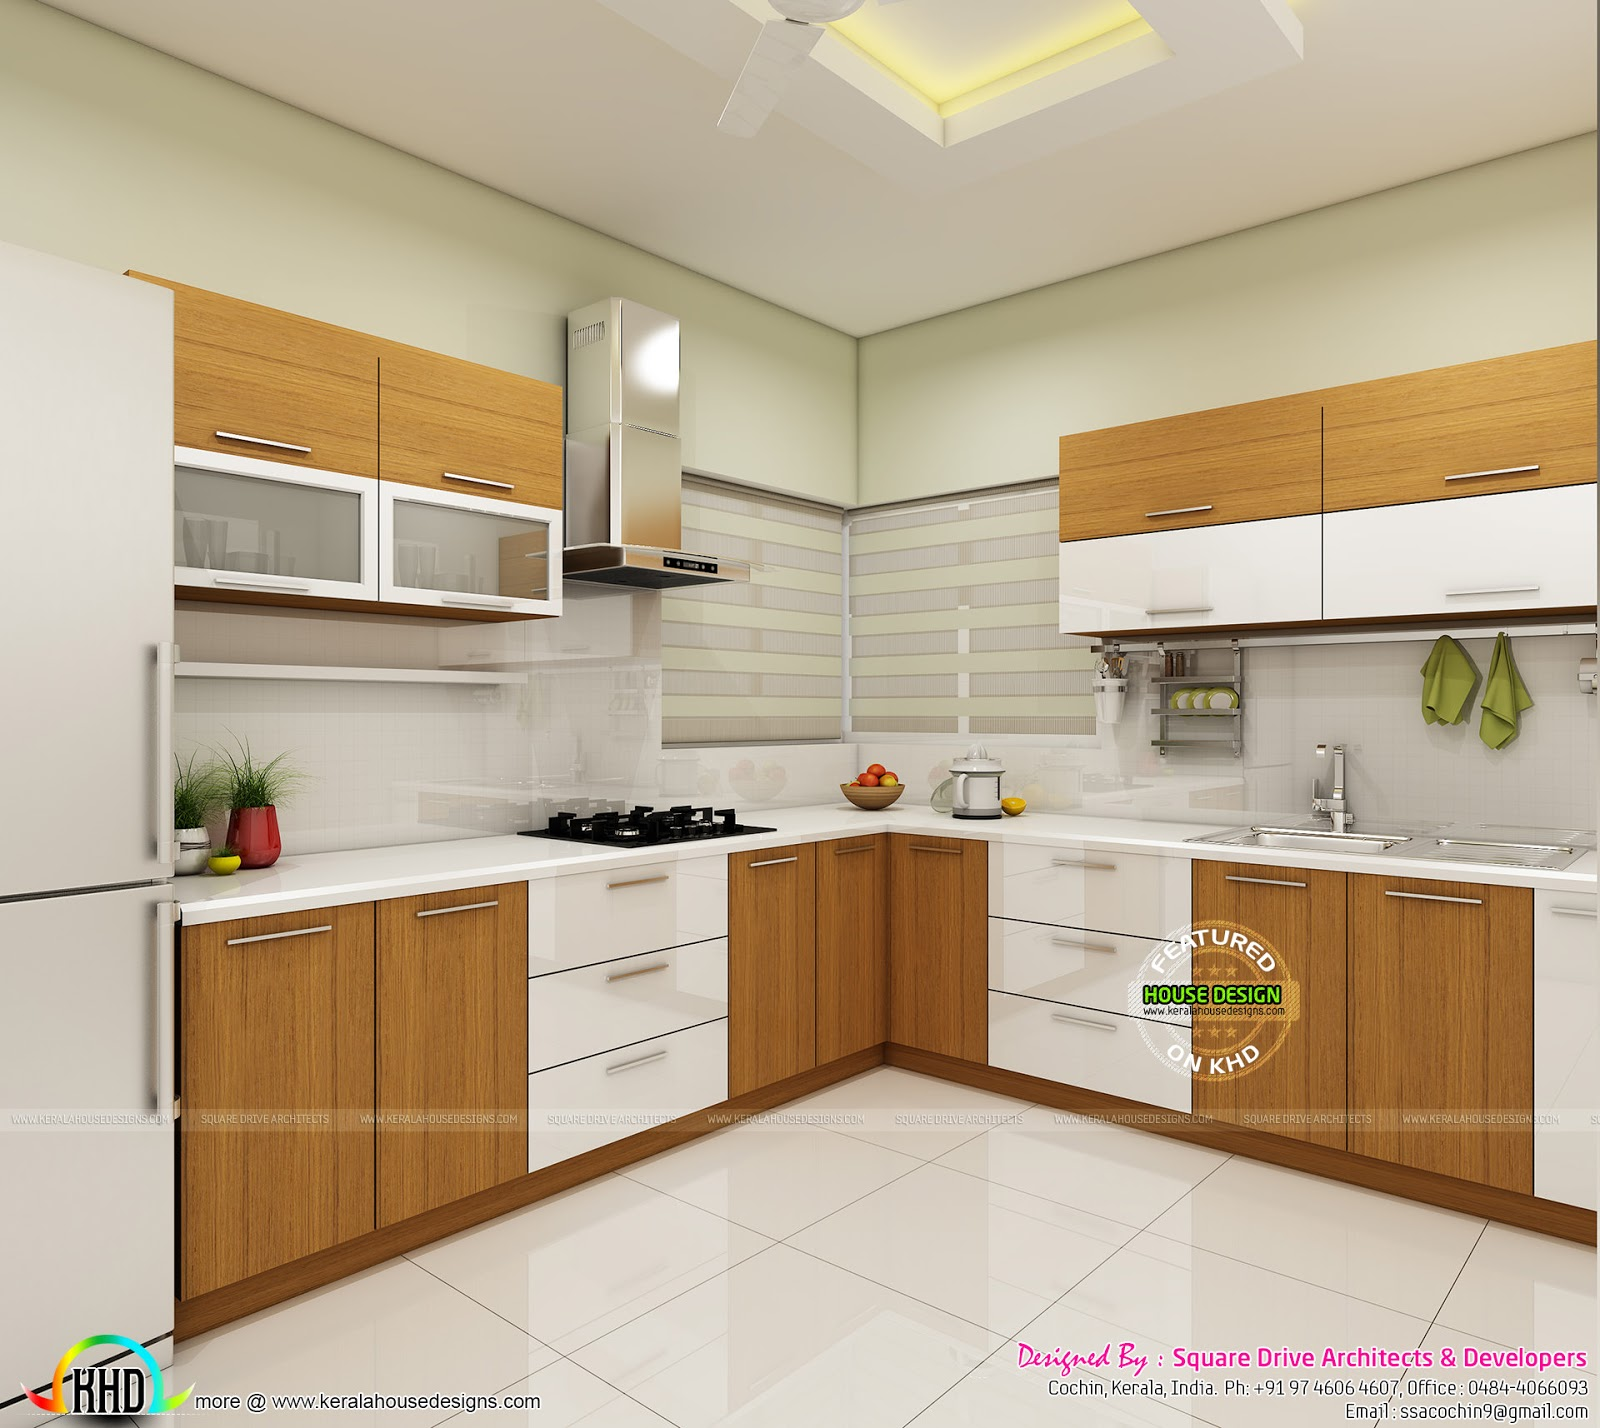 Kerala House Designs Plans Interior: Modern Home Interiors Of Bedroom, Dining, Kitchen